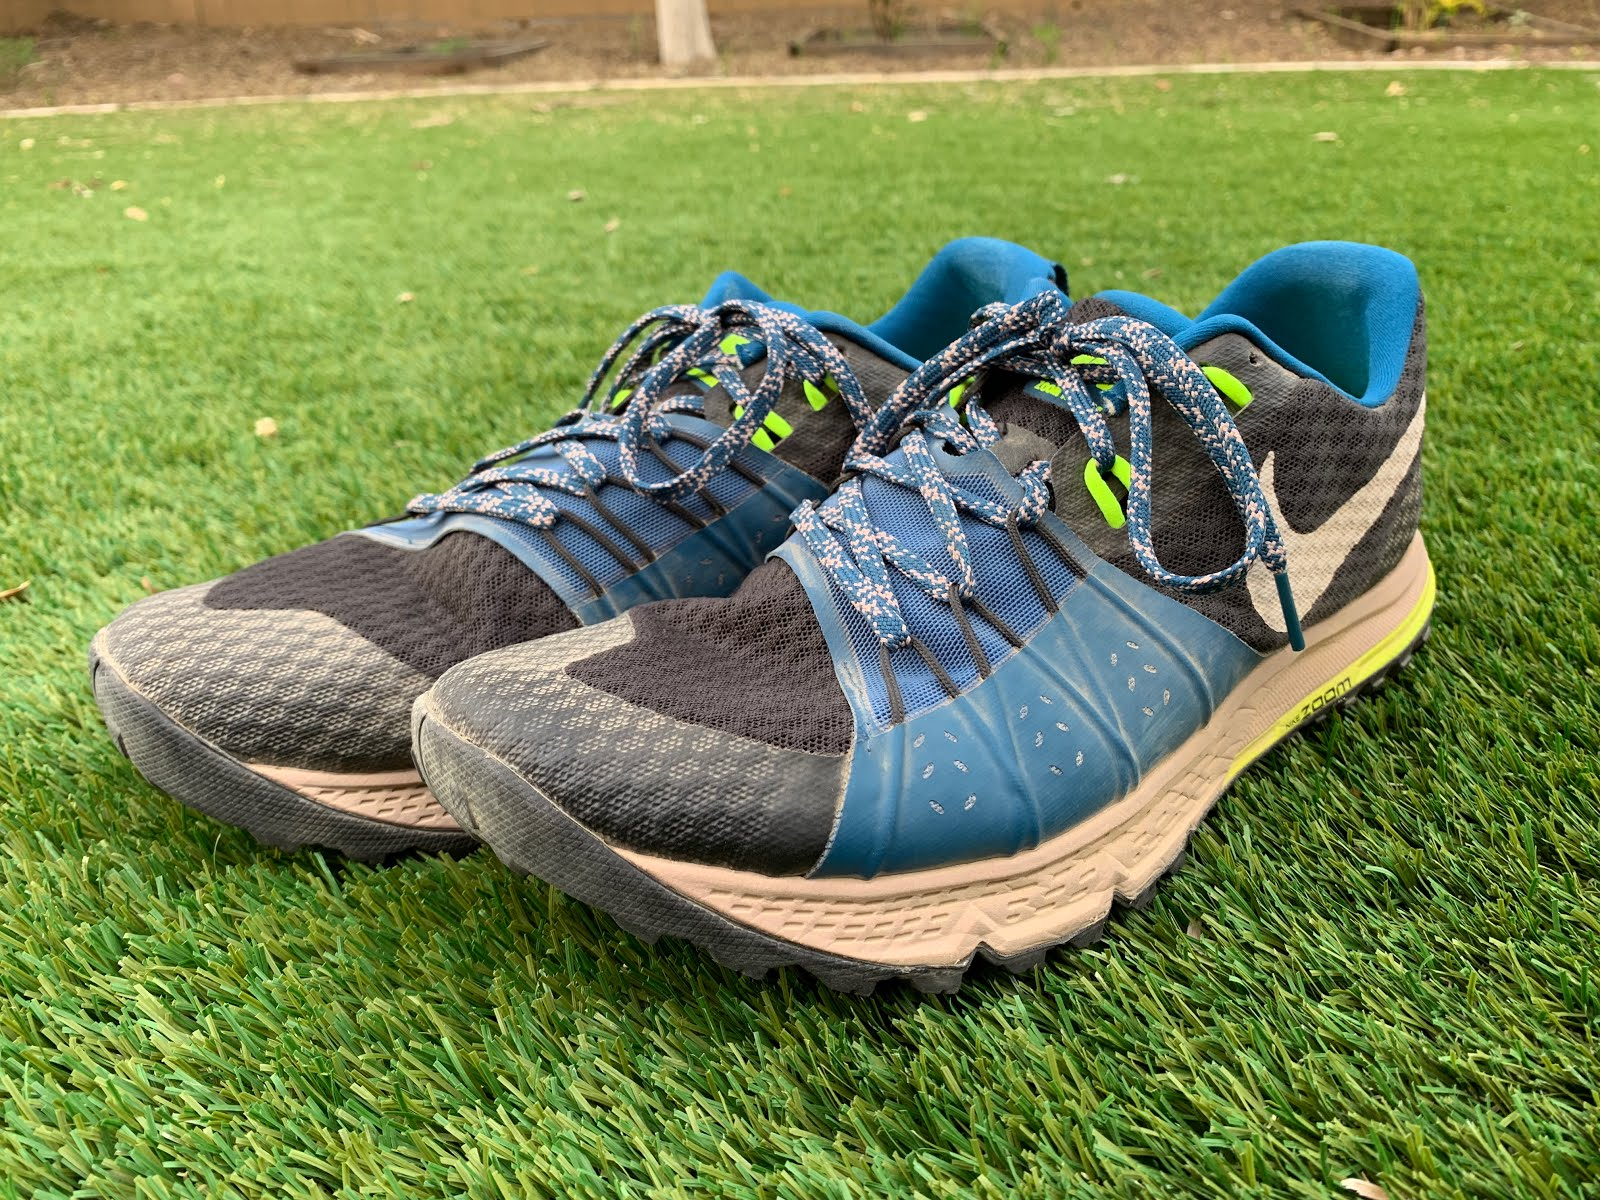 aa2bbe3af28dfa Road Trail Run  Nike Air Zoom Wildhorse 4 Review - Monster on the ...